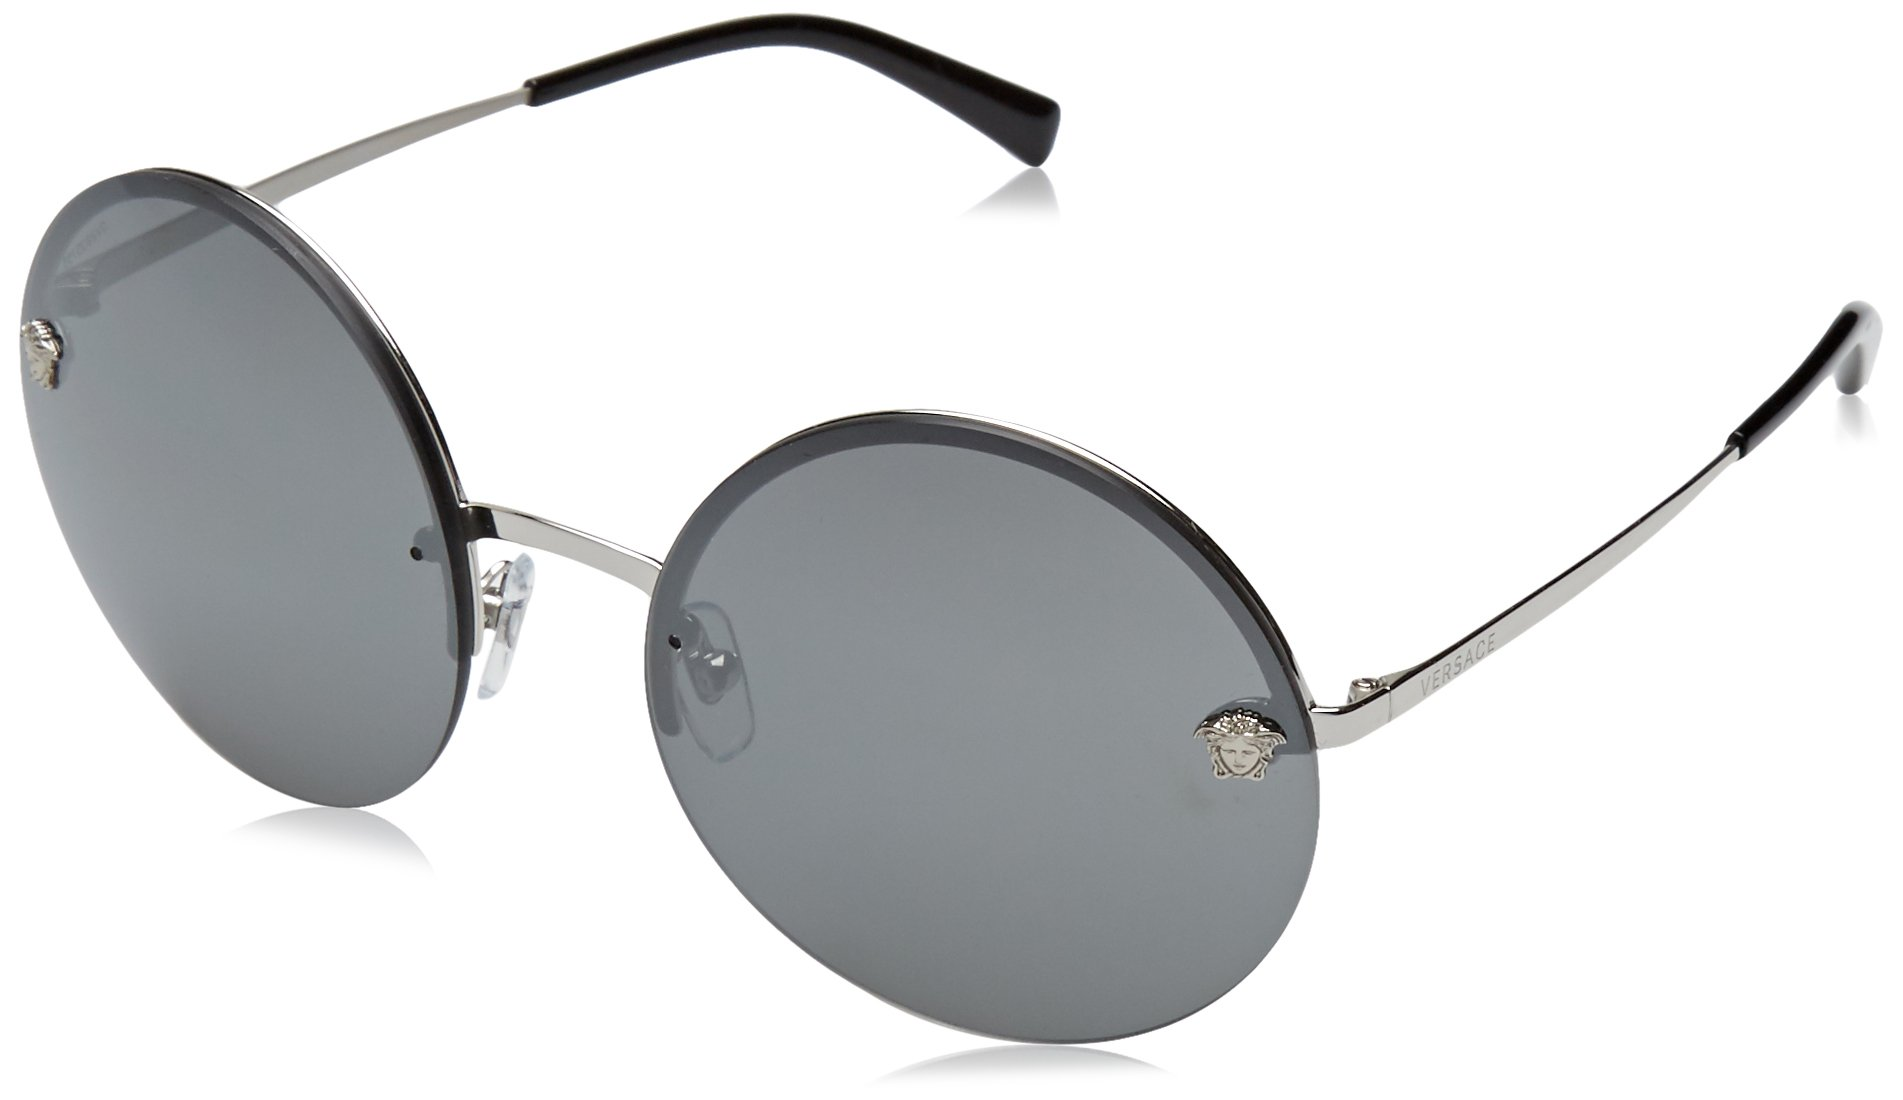 Versace Womens Sunglasses Silver/Silver Metal - Non-Polarized - 59mm